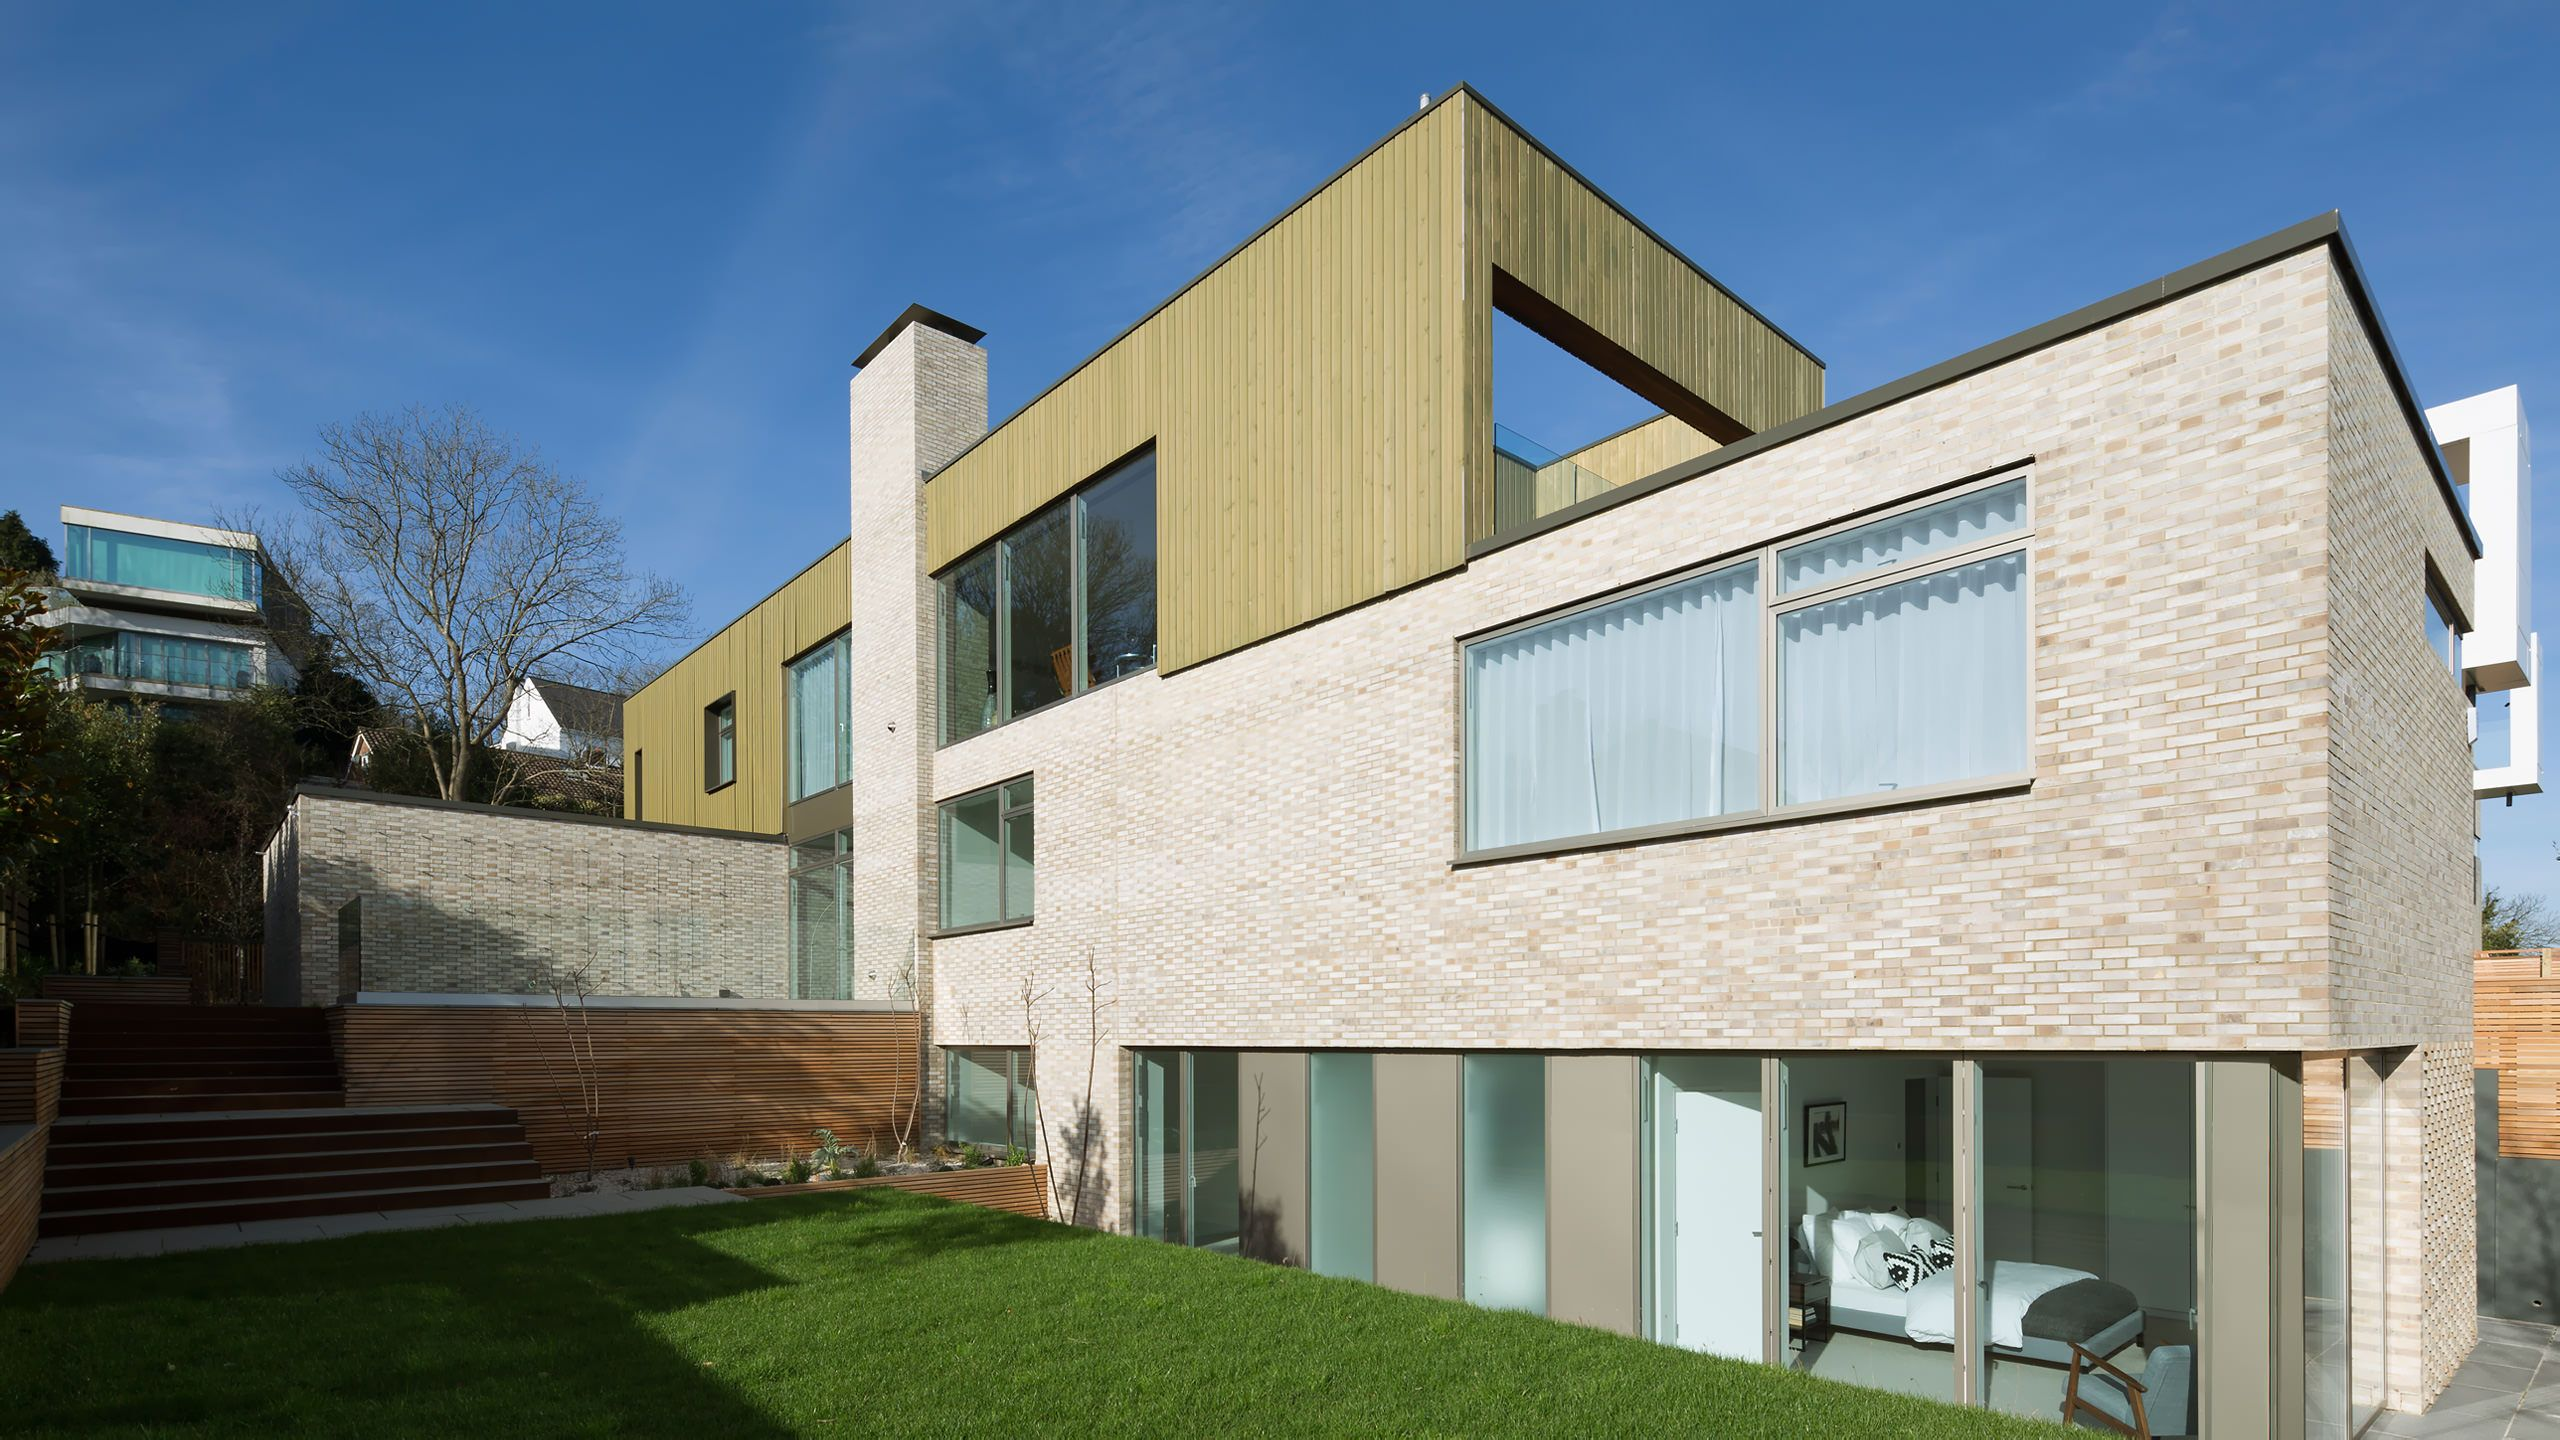 Withdean Road Houses, Sussex UK - John Pardey Architects (JPA)